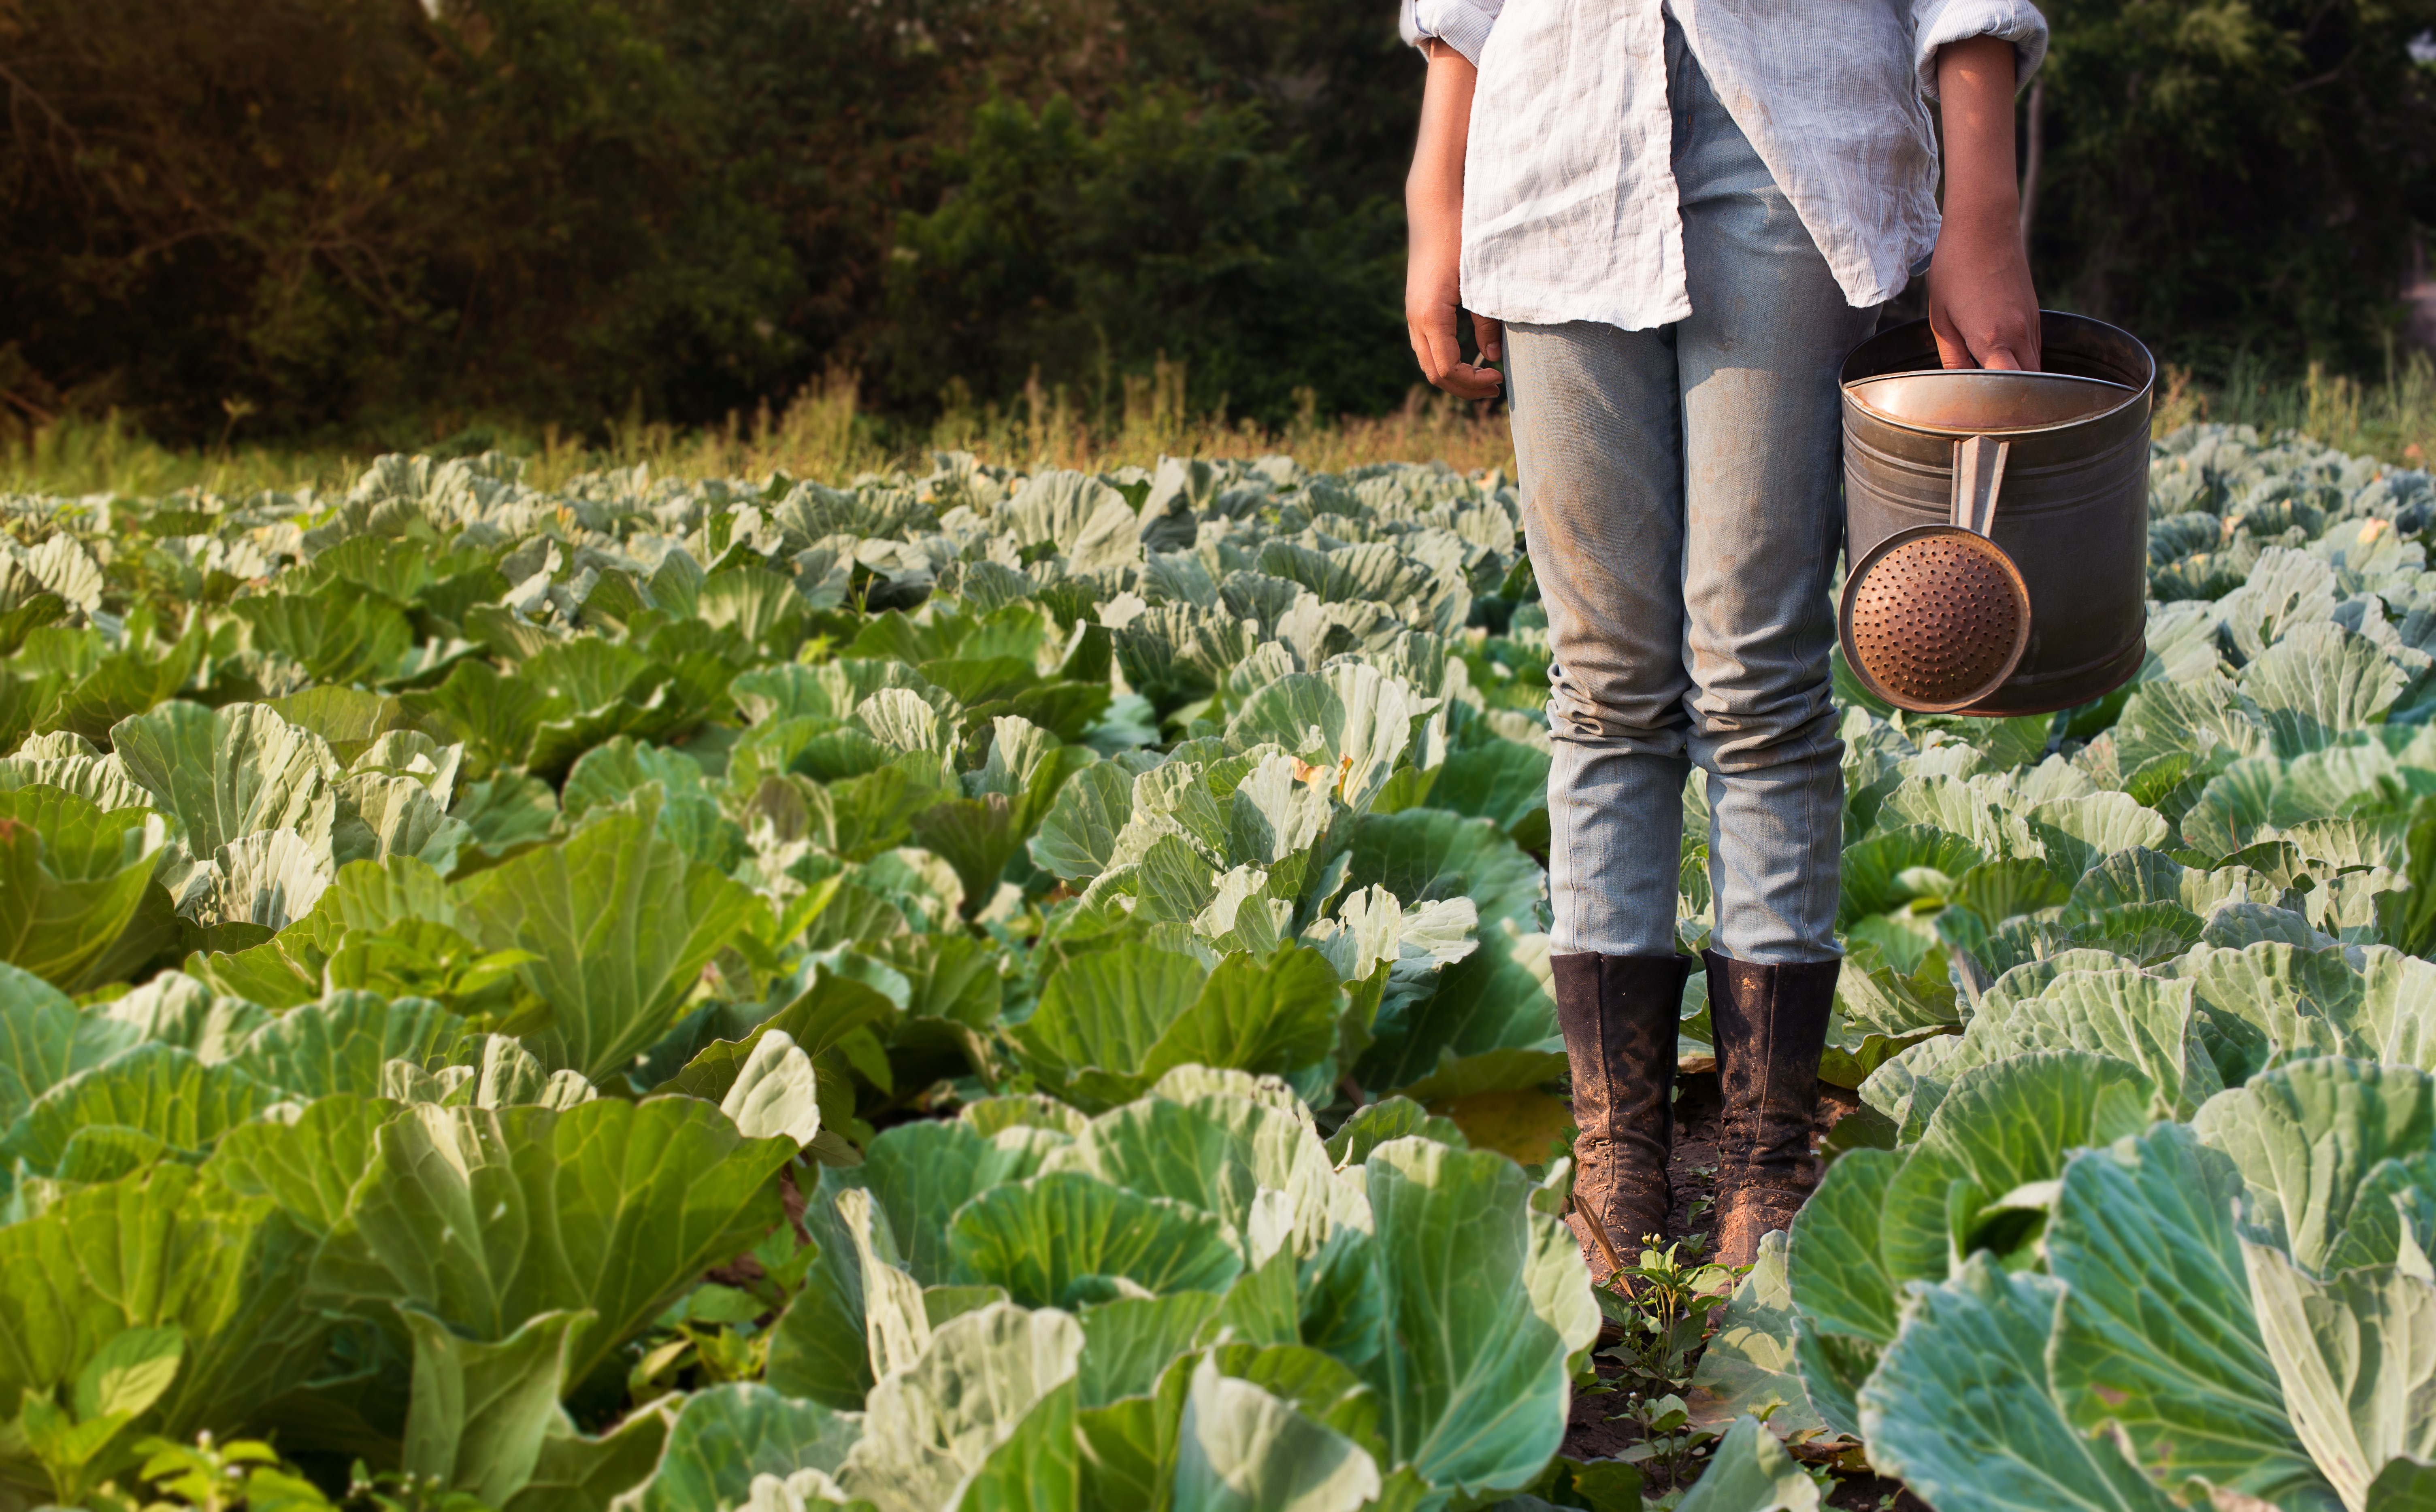 Woman in field of cabbages with watering can.jpg